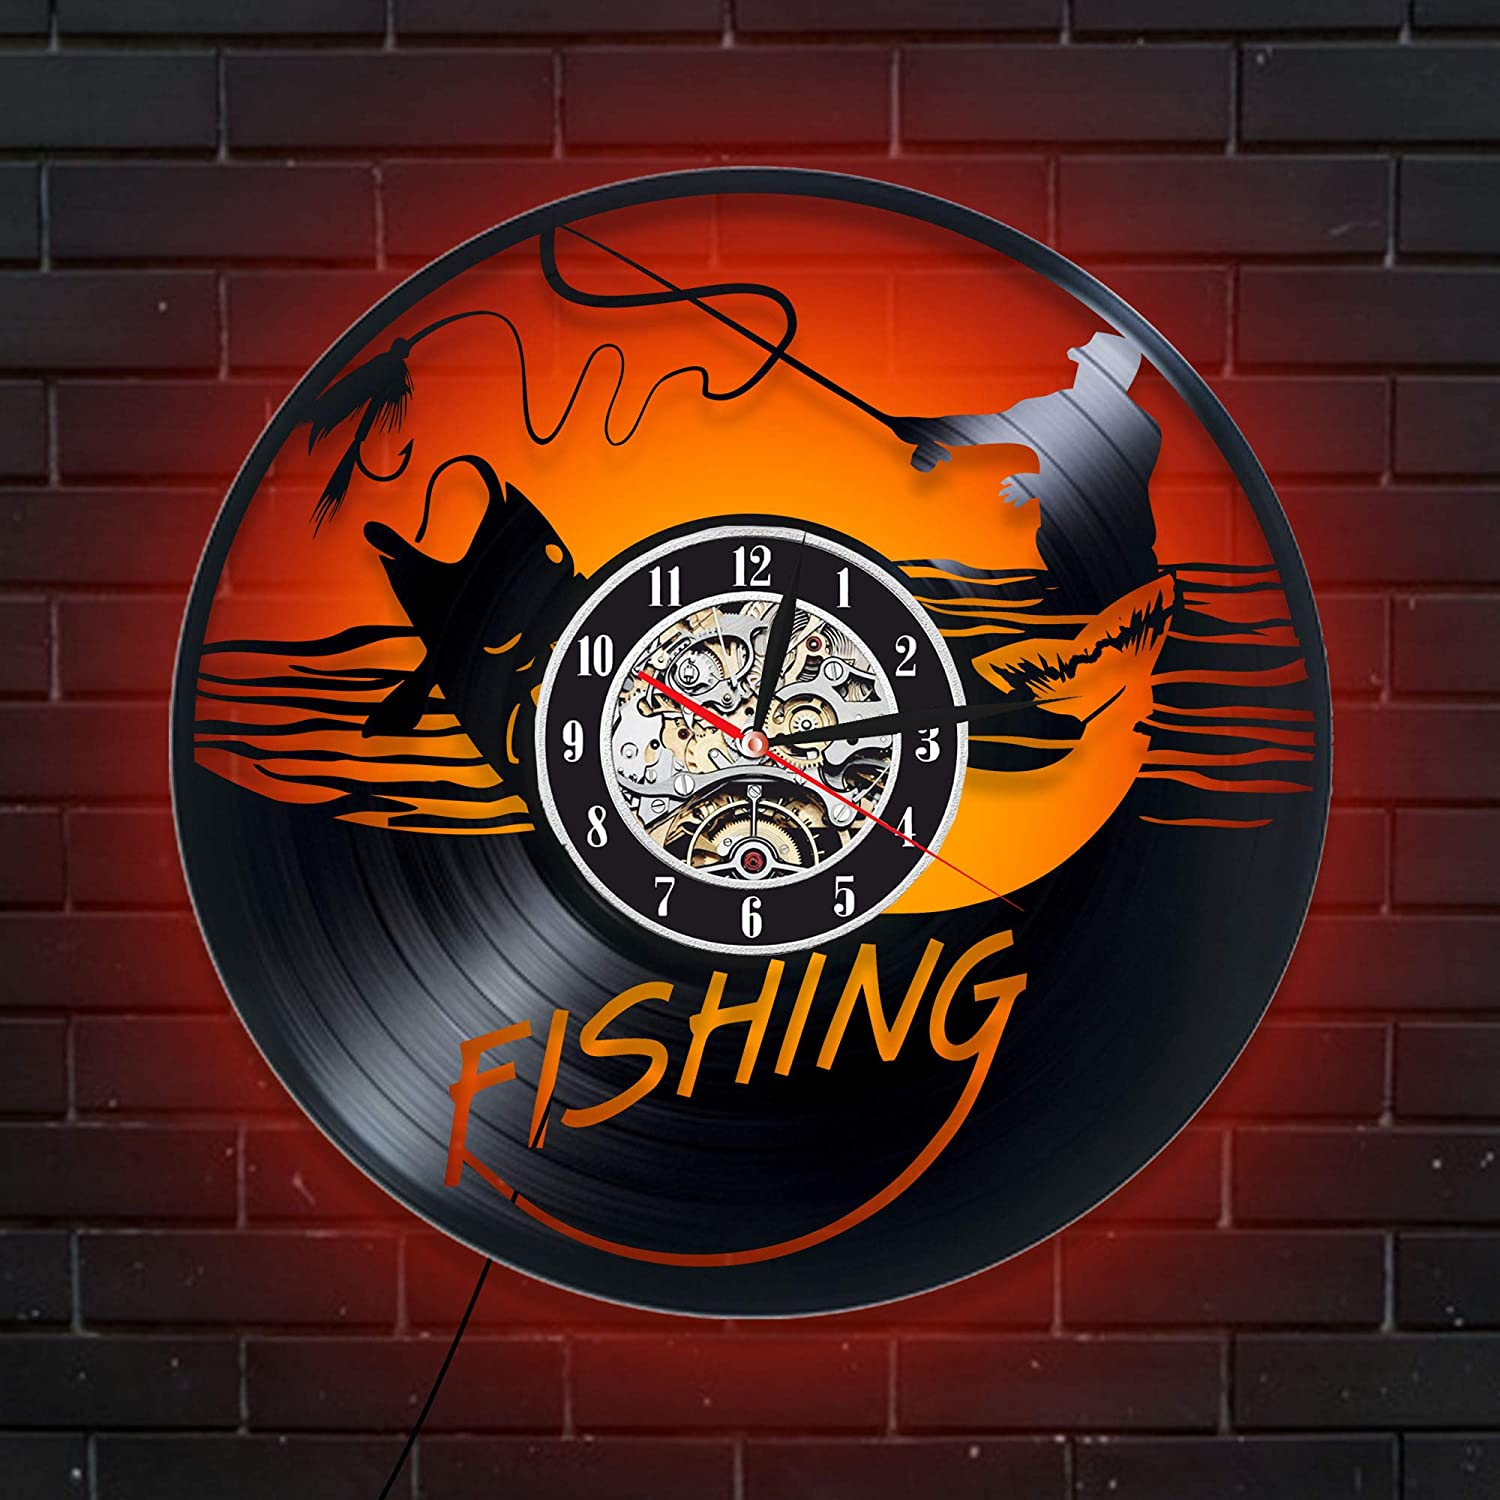 Levescale Fly Fishing Lighted Vinyl Wall Clock - Vintage Style for Him, Dad, Husband, Fisherman - Decoration for Kitchen, Bedroom - Fish - Hobbies - Needle Knot - Salmon - Coarse Fishing (Red)